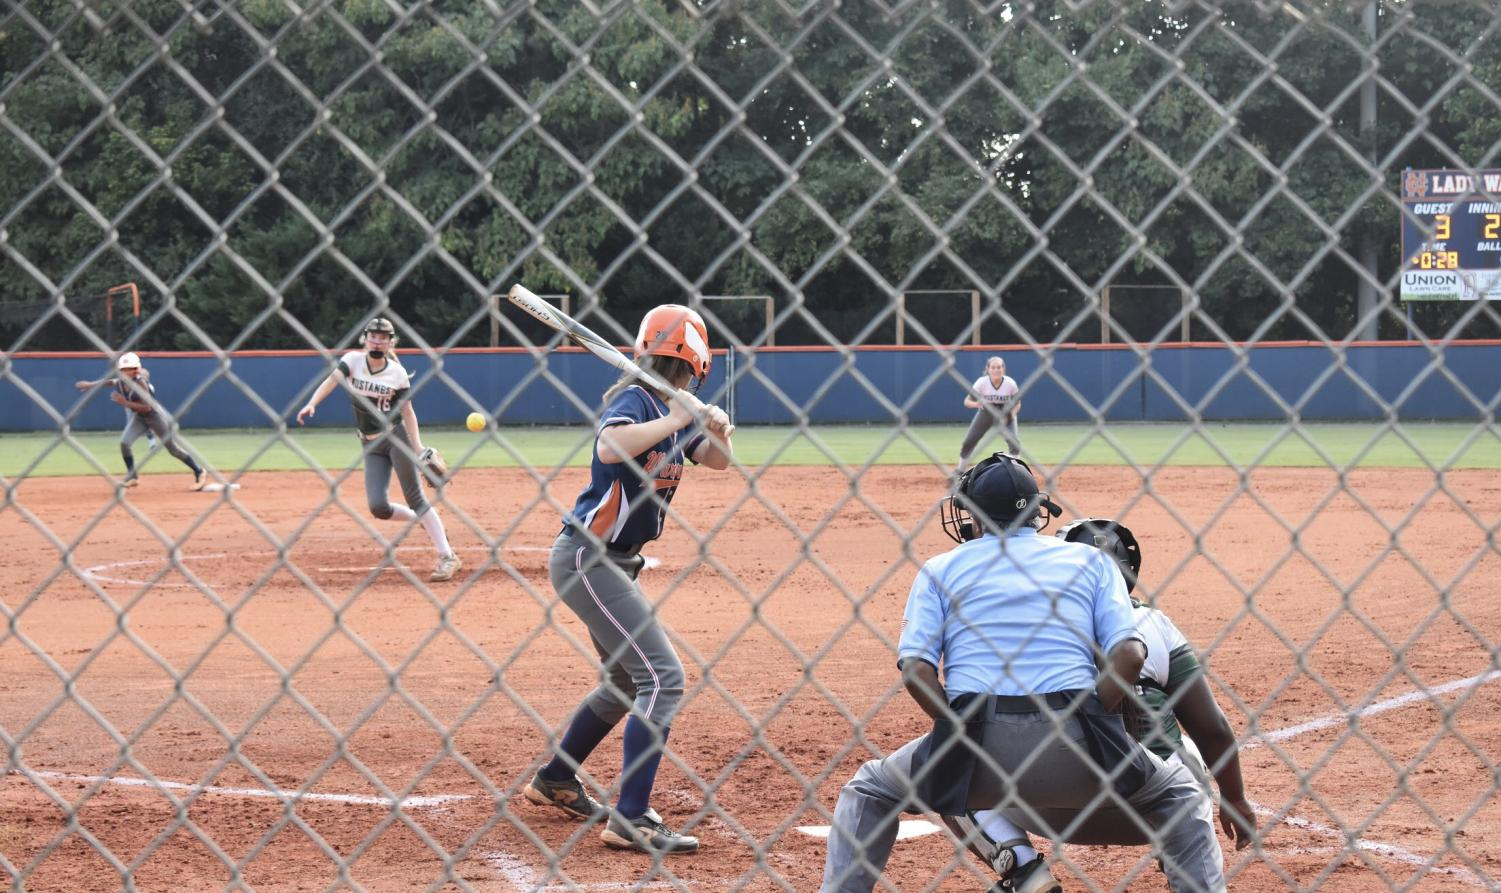 JV softball player, sophomore Abi Klinkert prepares to swing during the second inning. In their third game of the season, the JV Lady Warriors went up against the Kennesaw Mountain Mustangs.